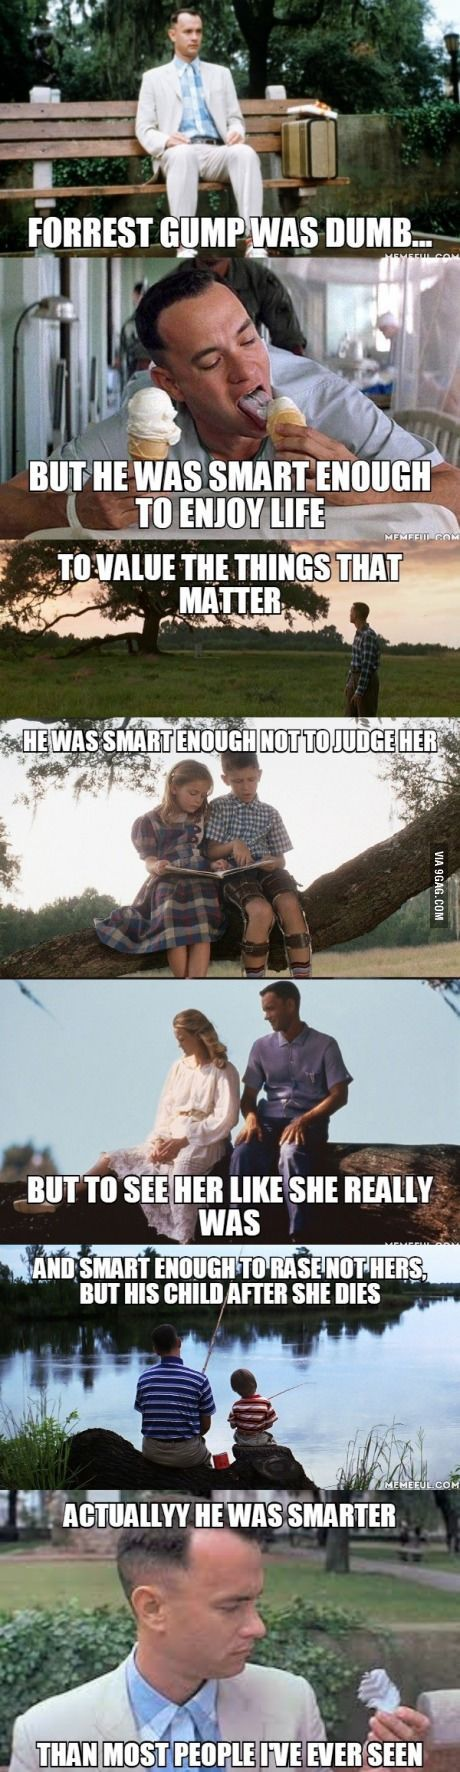 Forrest Gump wasn't just the story of a stupid guy, it was story about true love and how it can conquer all! Love this movie!